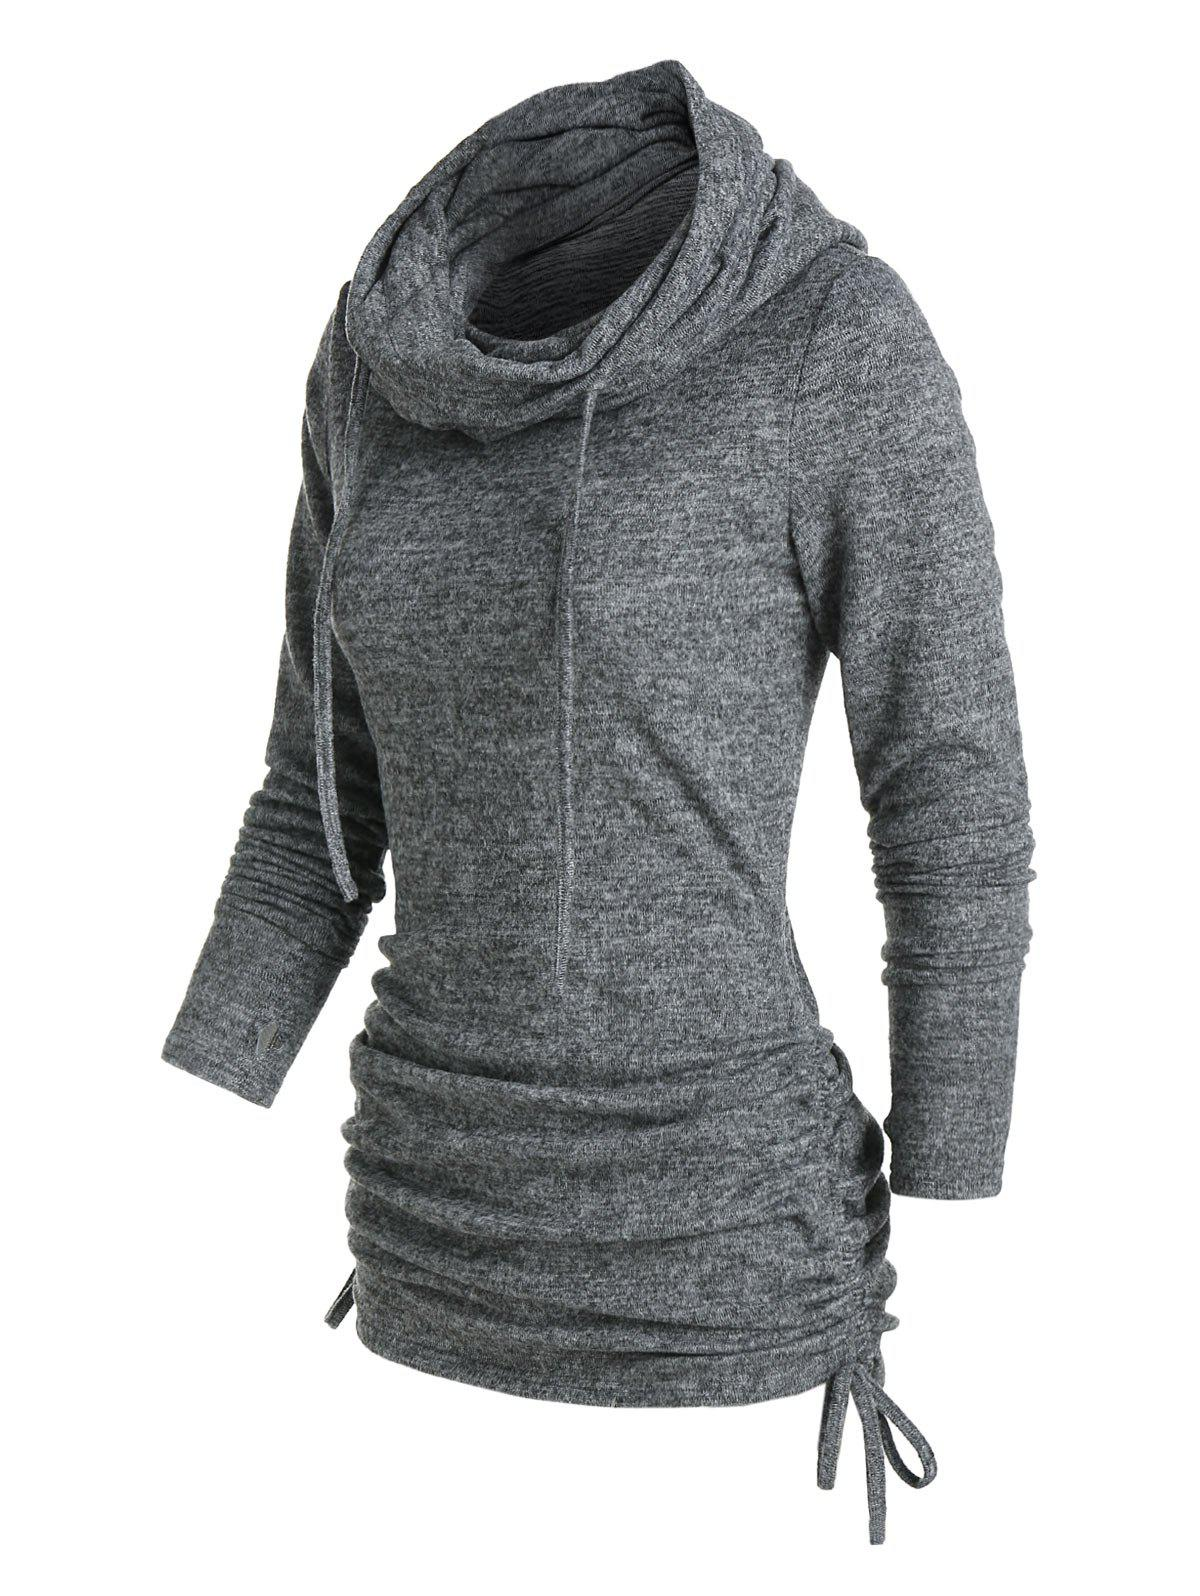 Cowl Neck Cinched Hem Knitted Drawstring Sweatshirt - ASH GRAY M